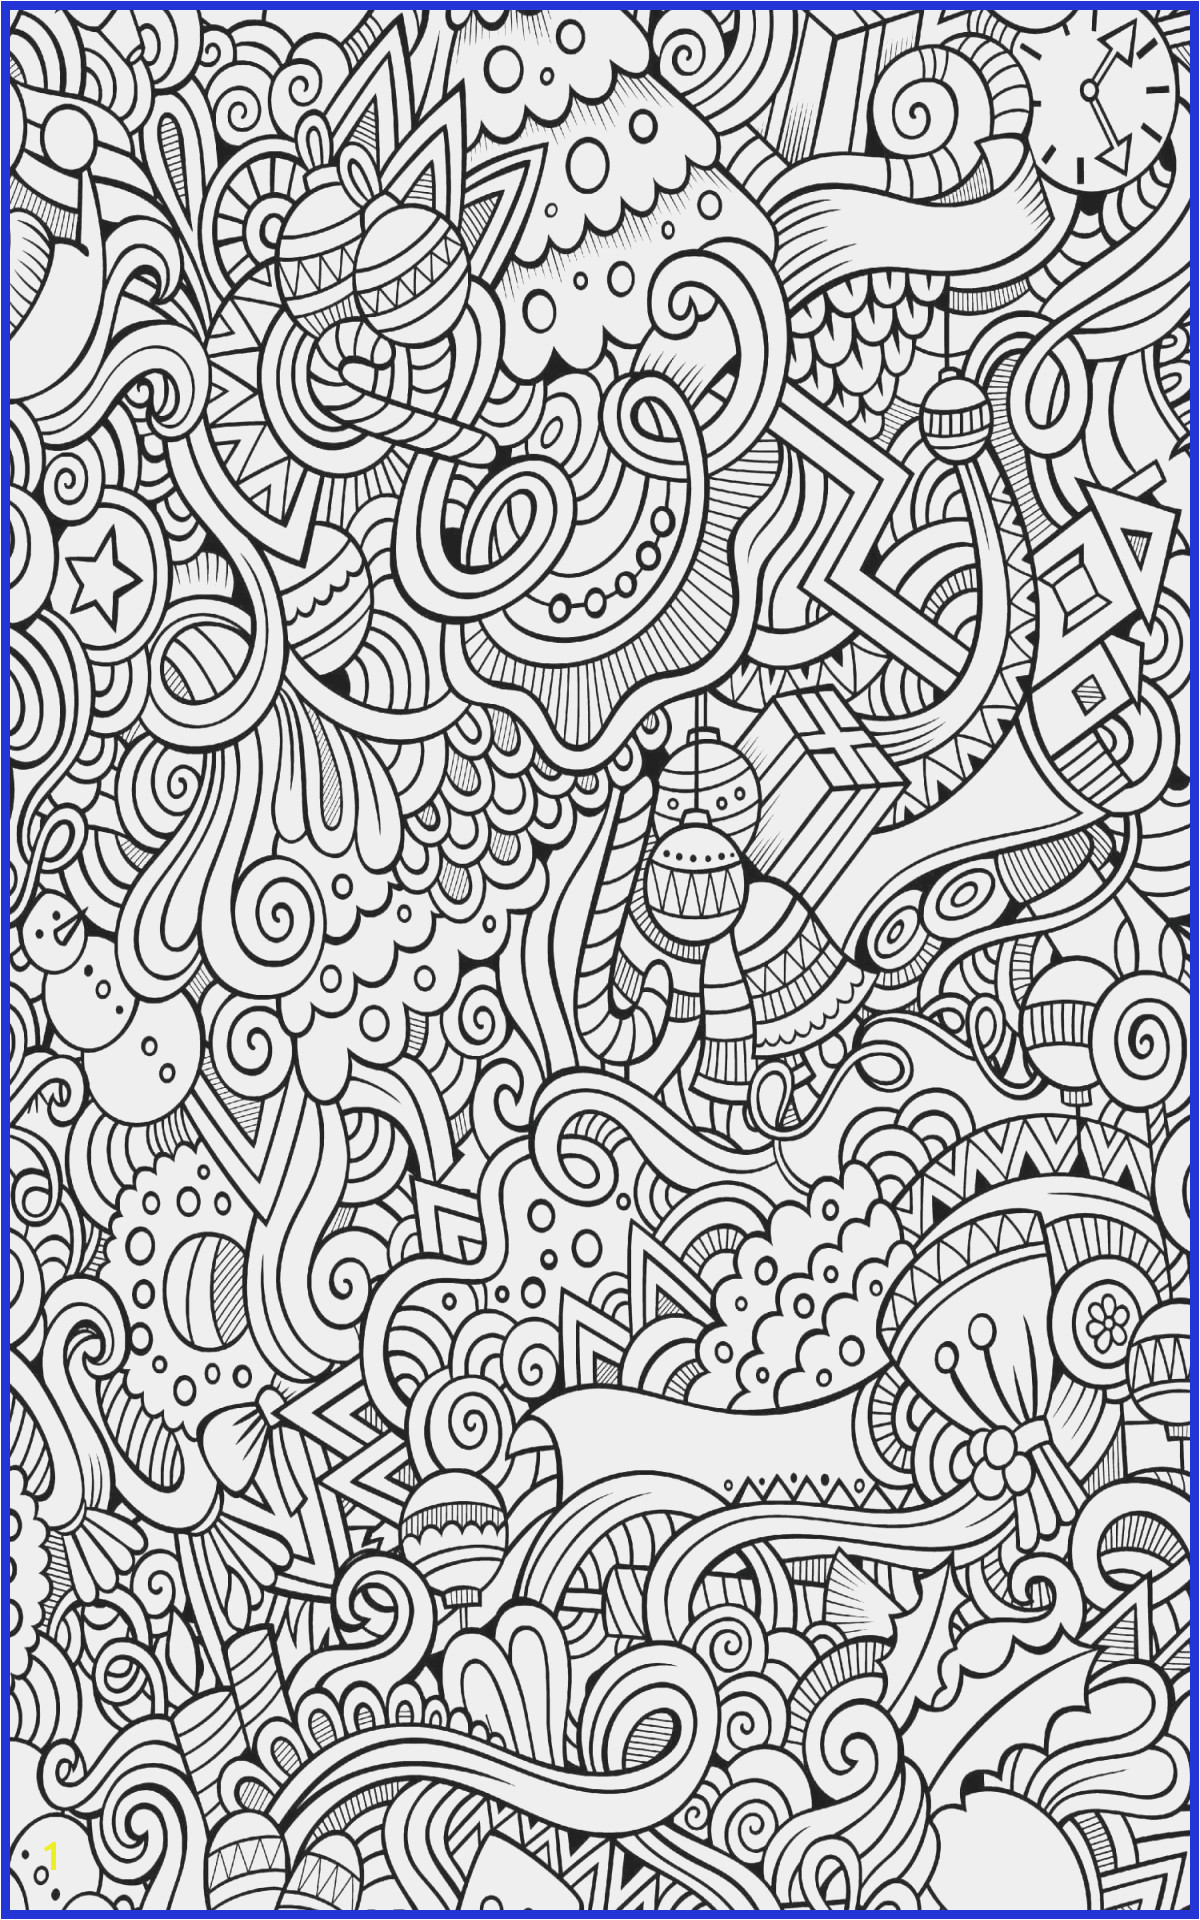 Free Printable Advanced Coloring Pages for Adults Free Printable Advanced Coloring Pages